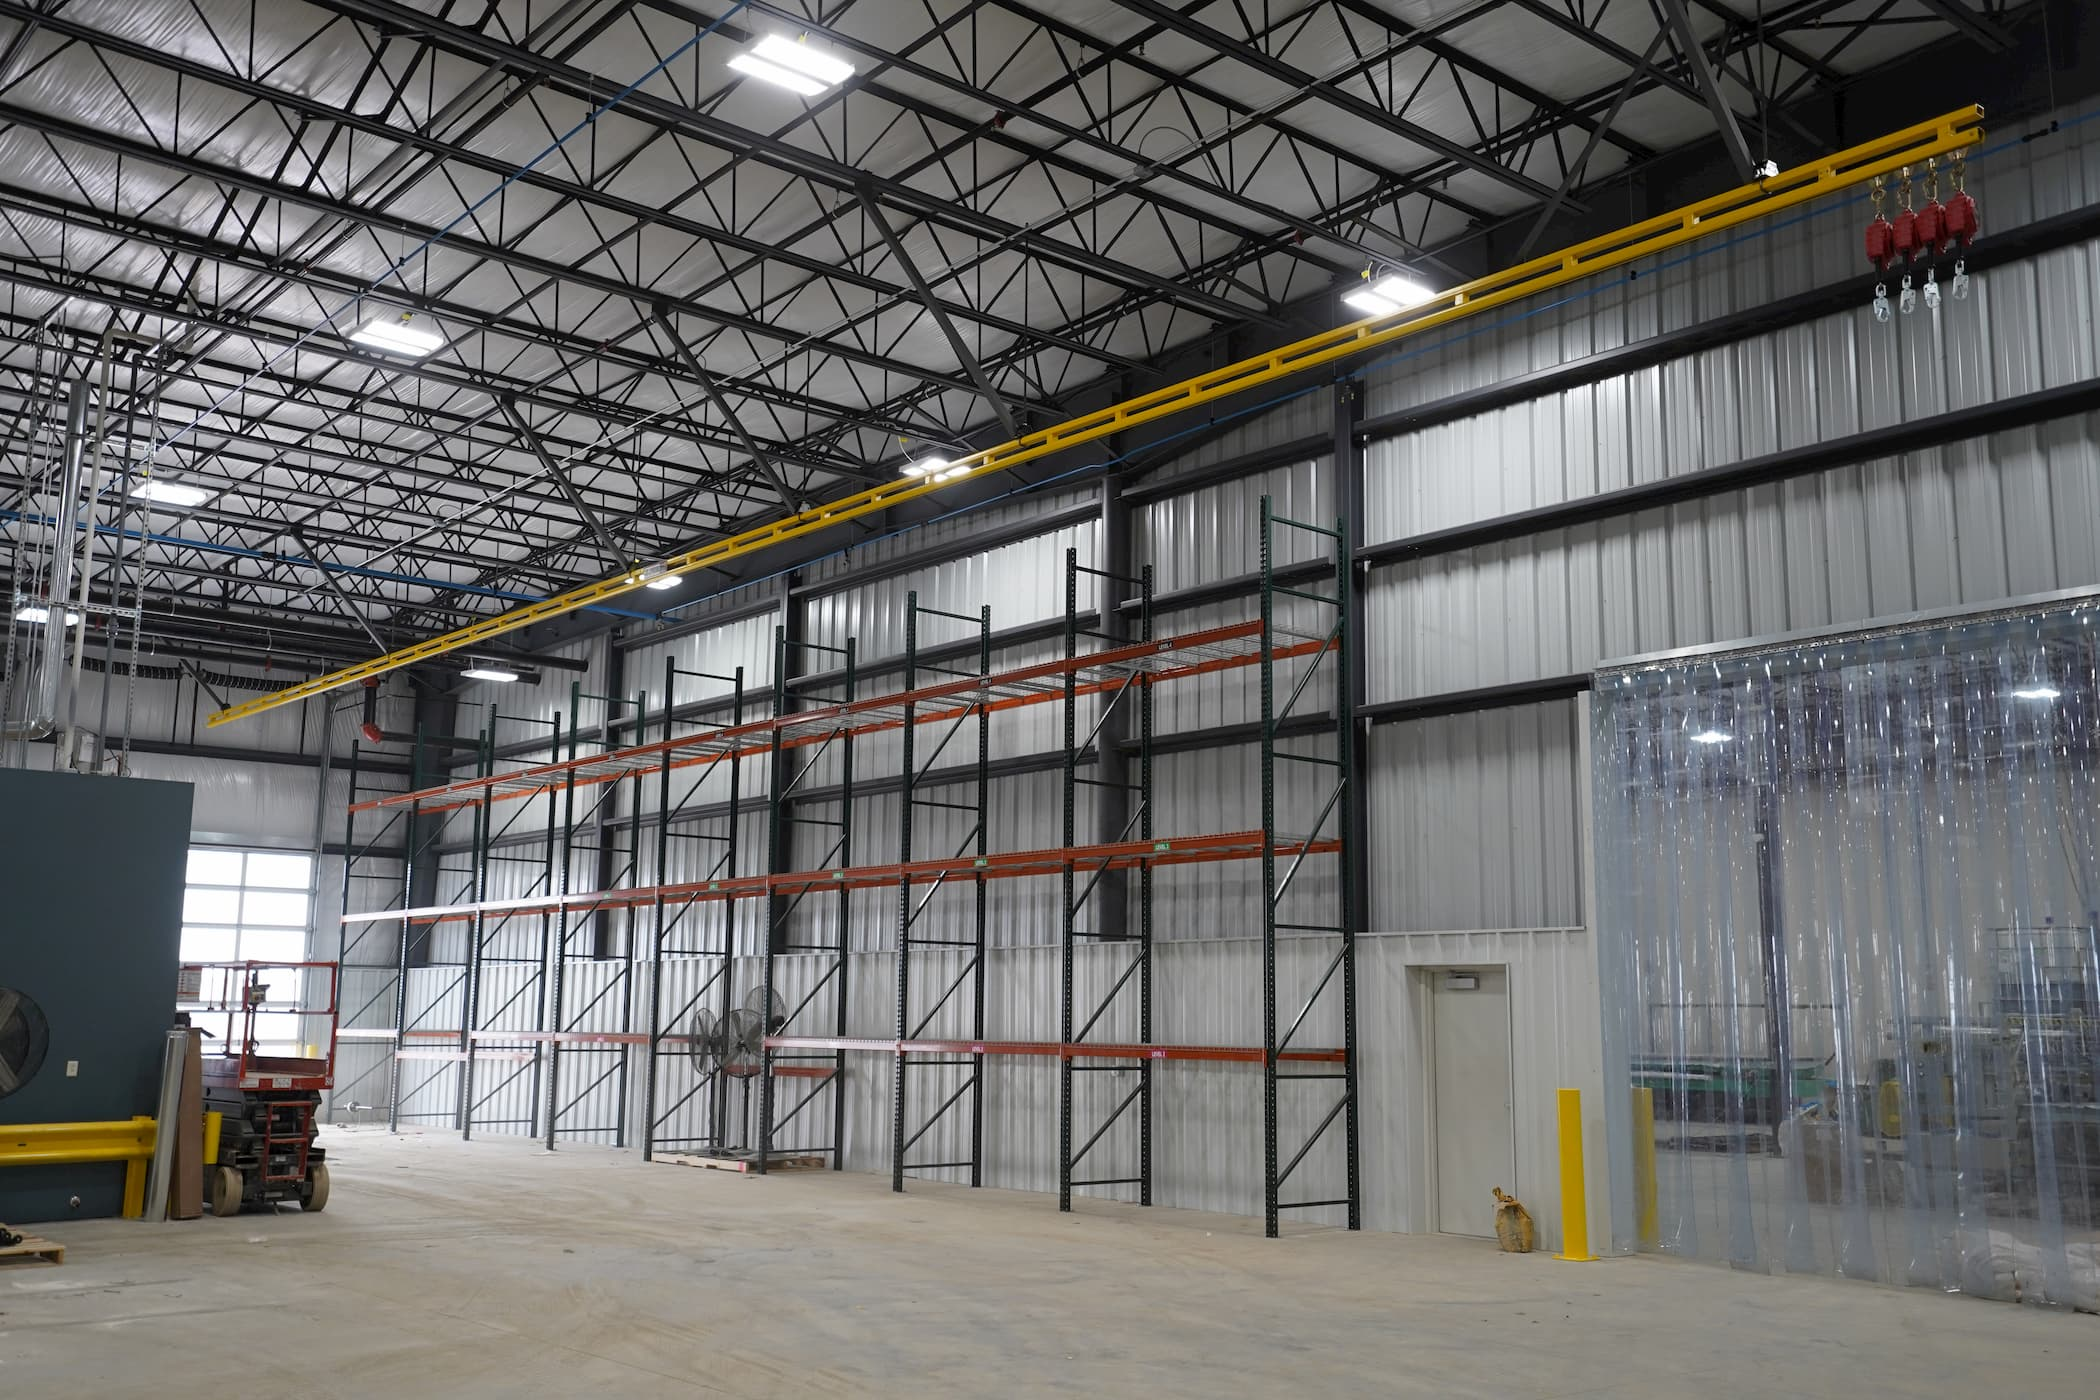 Fall Protection System That Is Ceiling Mounted